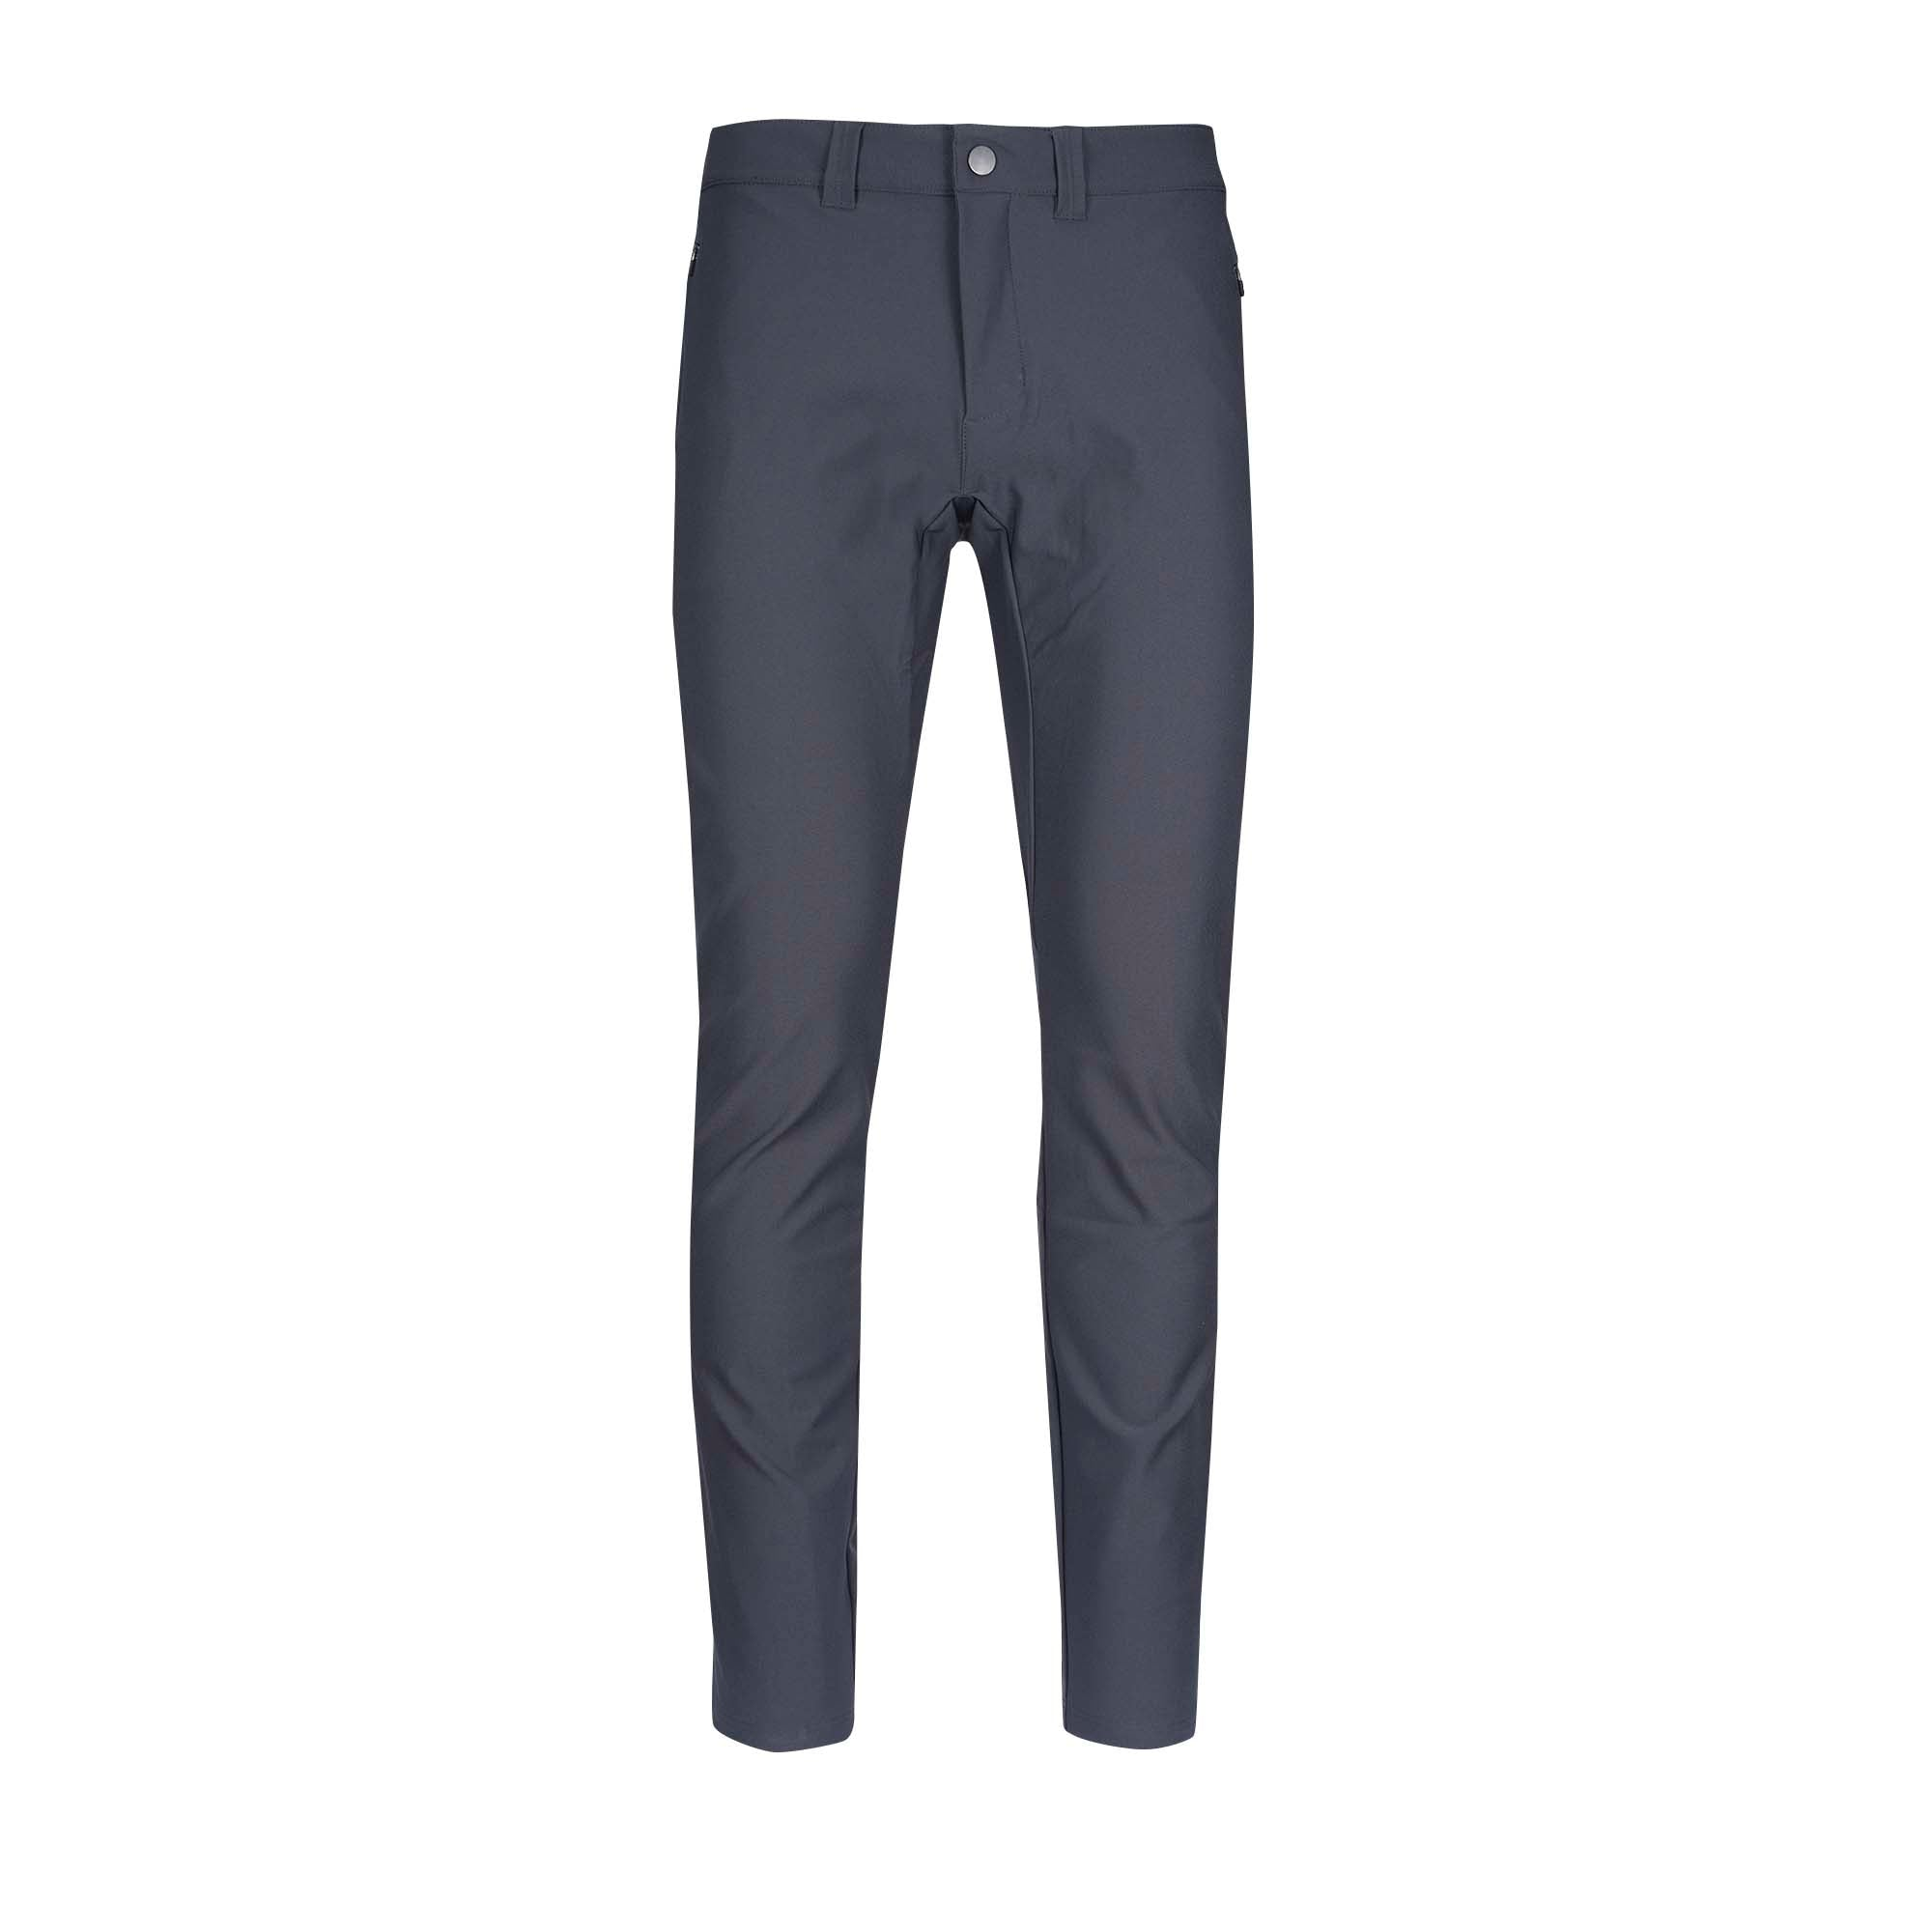 Men's RECON Stealth Pant